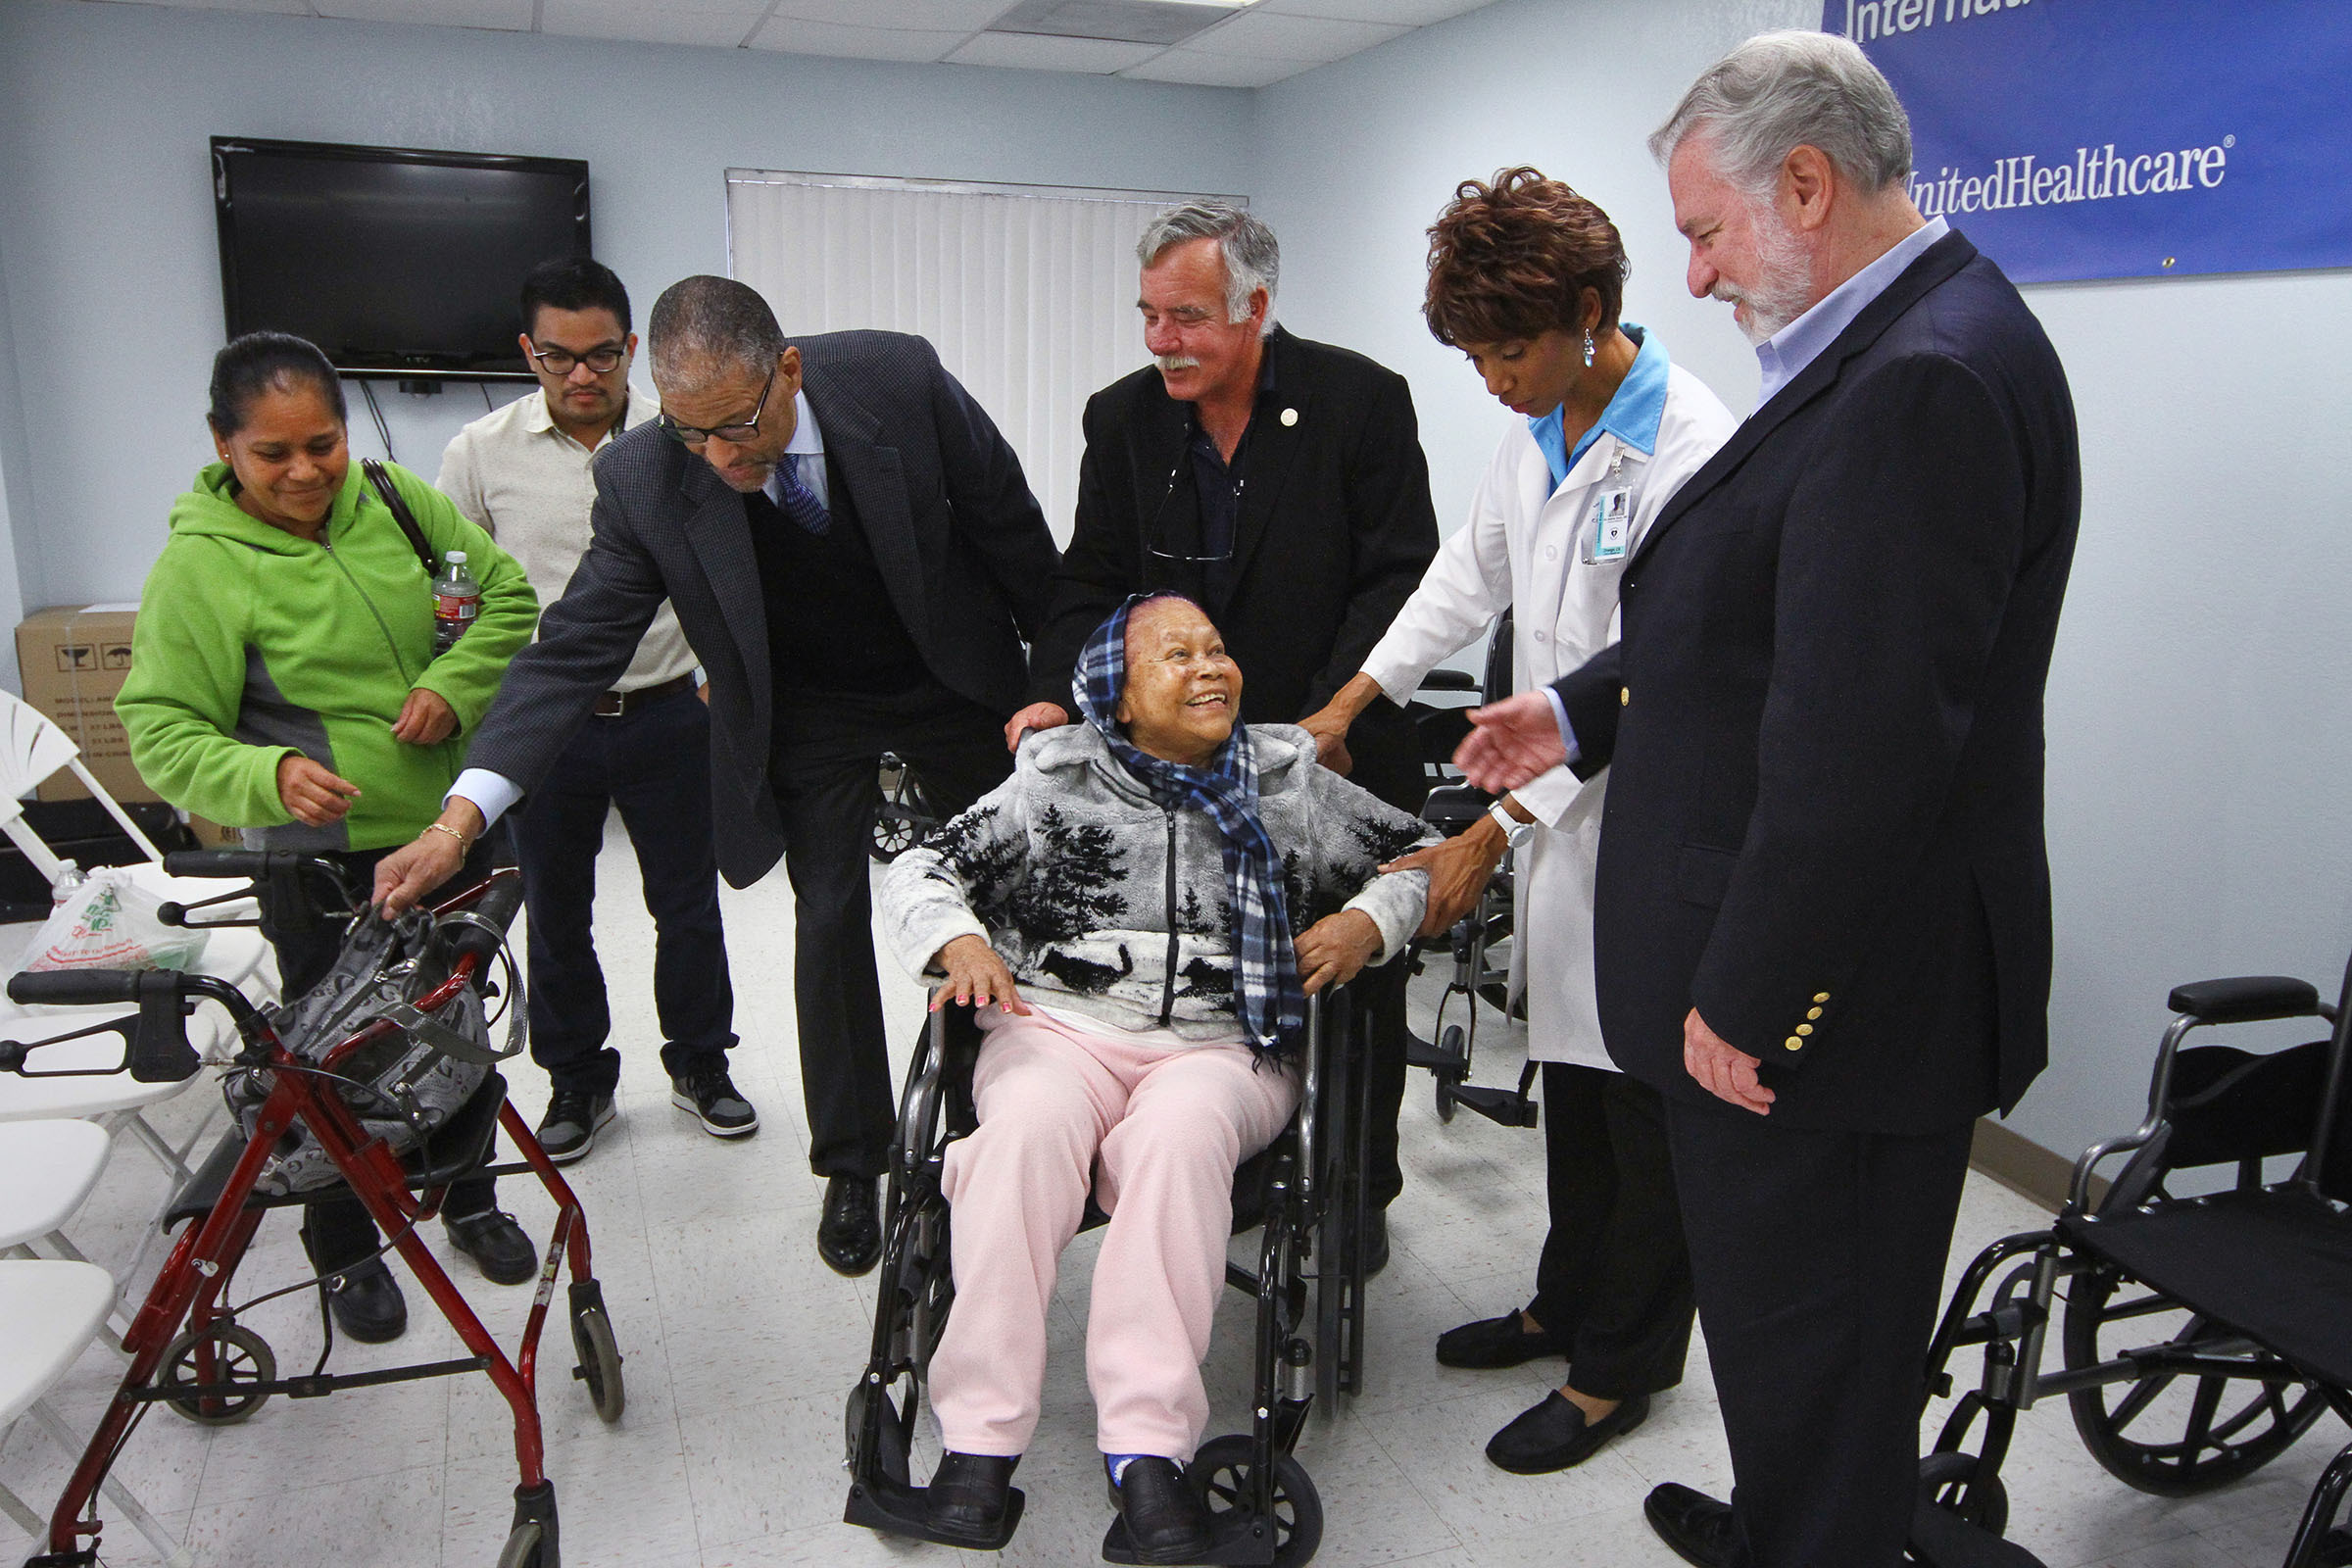 Antonia Palacios (sitting), of Santa Ana receives a wheelchair on Friday, Feb. 28 at Lestonnac Free Clinic. Looking on from left to right: Maria Chamu, daughter of Palacios; Bryan Melgar, Lestonnac staff member; Keith Emmons, M.D., market medical director, UnitedHealthcare; Ed Gerber, executive director of Lestonnac; Andrea Avery, M.D., Lestonnac board member and volunteer physician; and Russ Bennett, vice president, Latino Health Solutions, UnitedHealthcare (Photo: Jamie Rector).